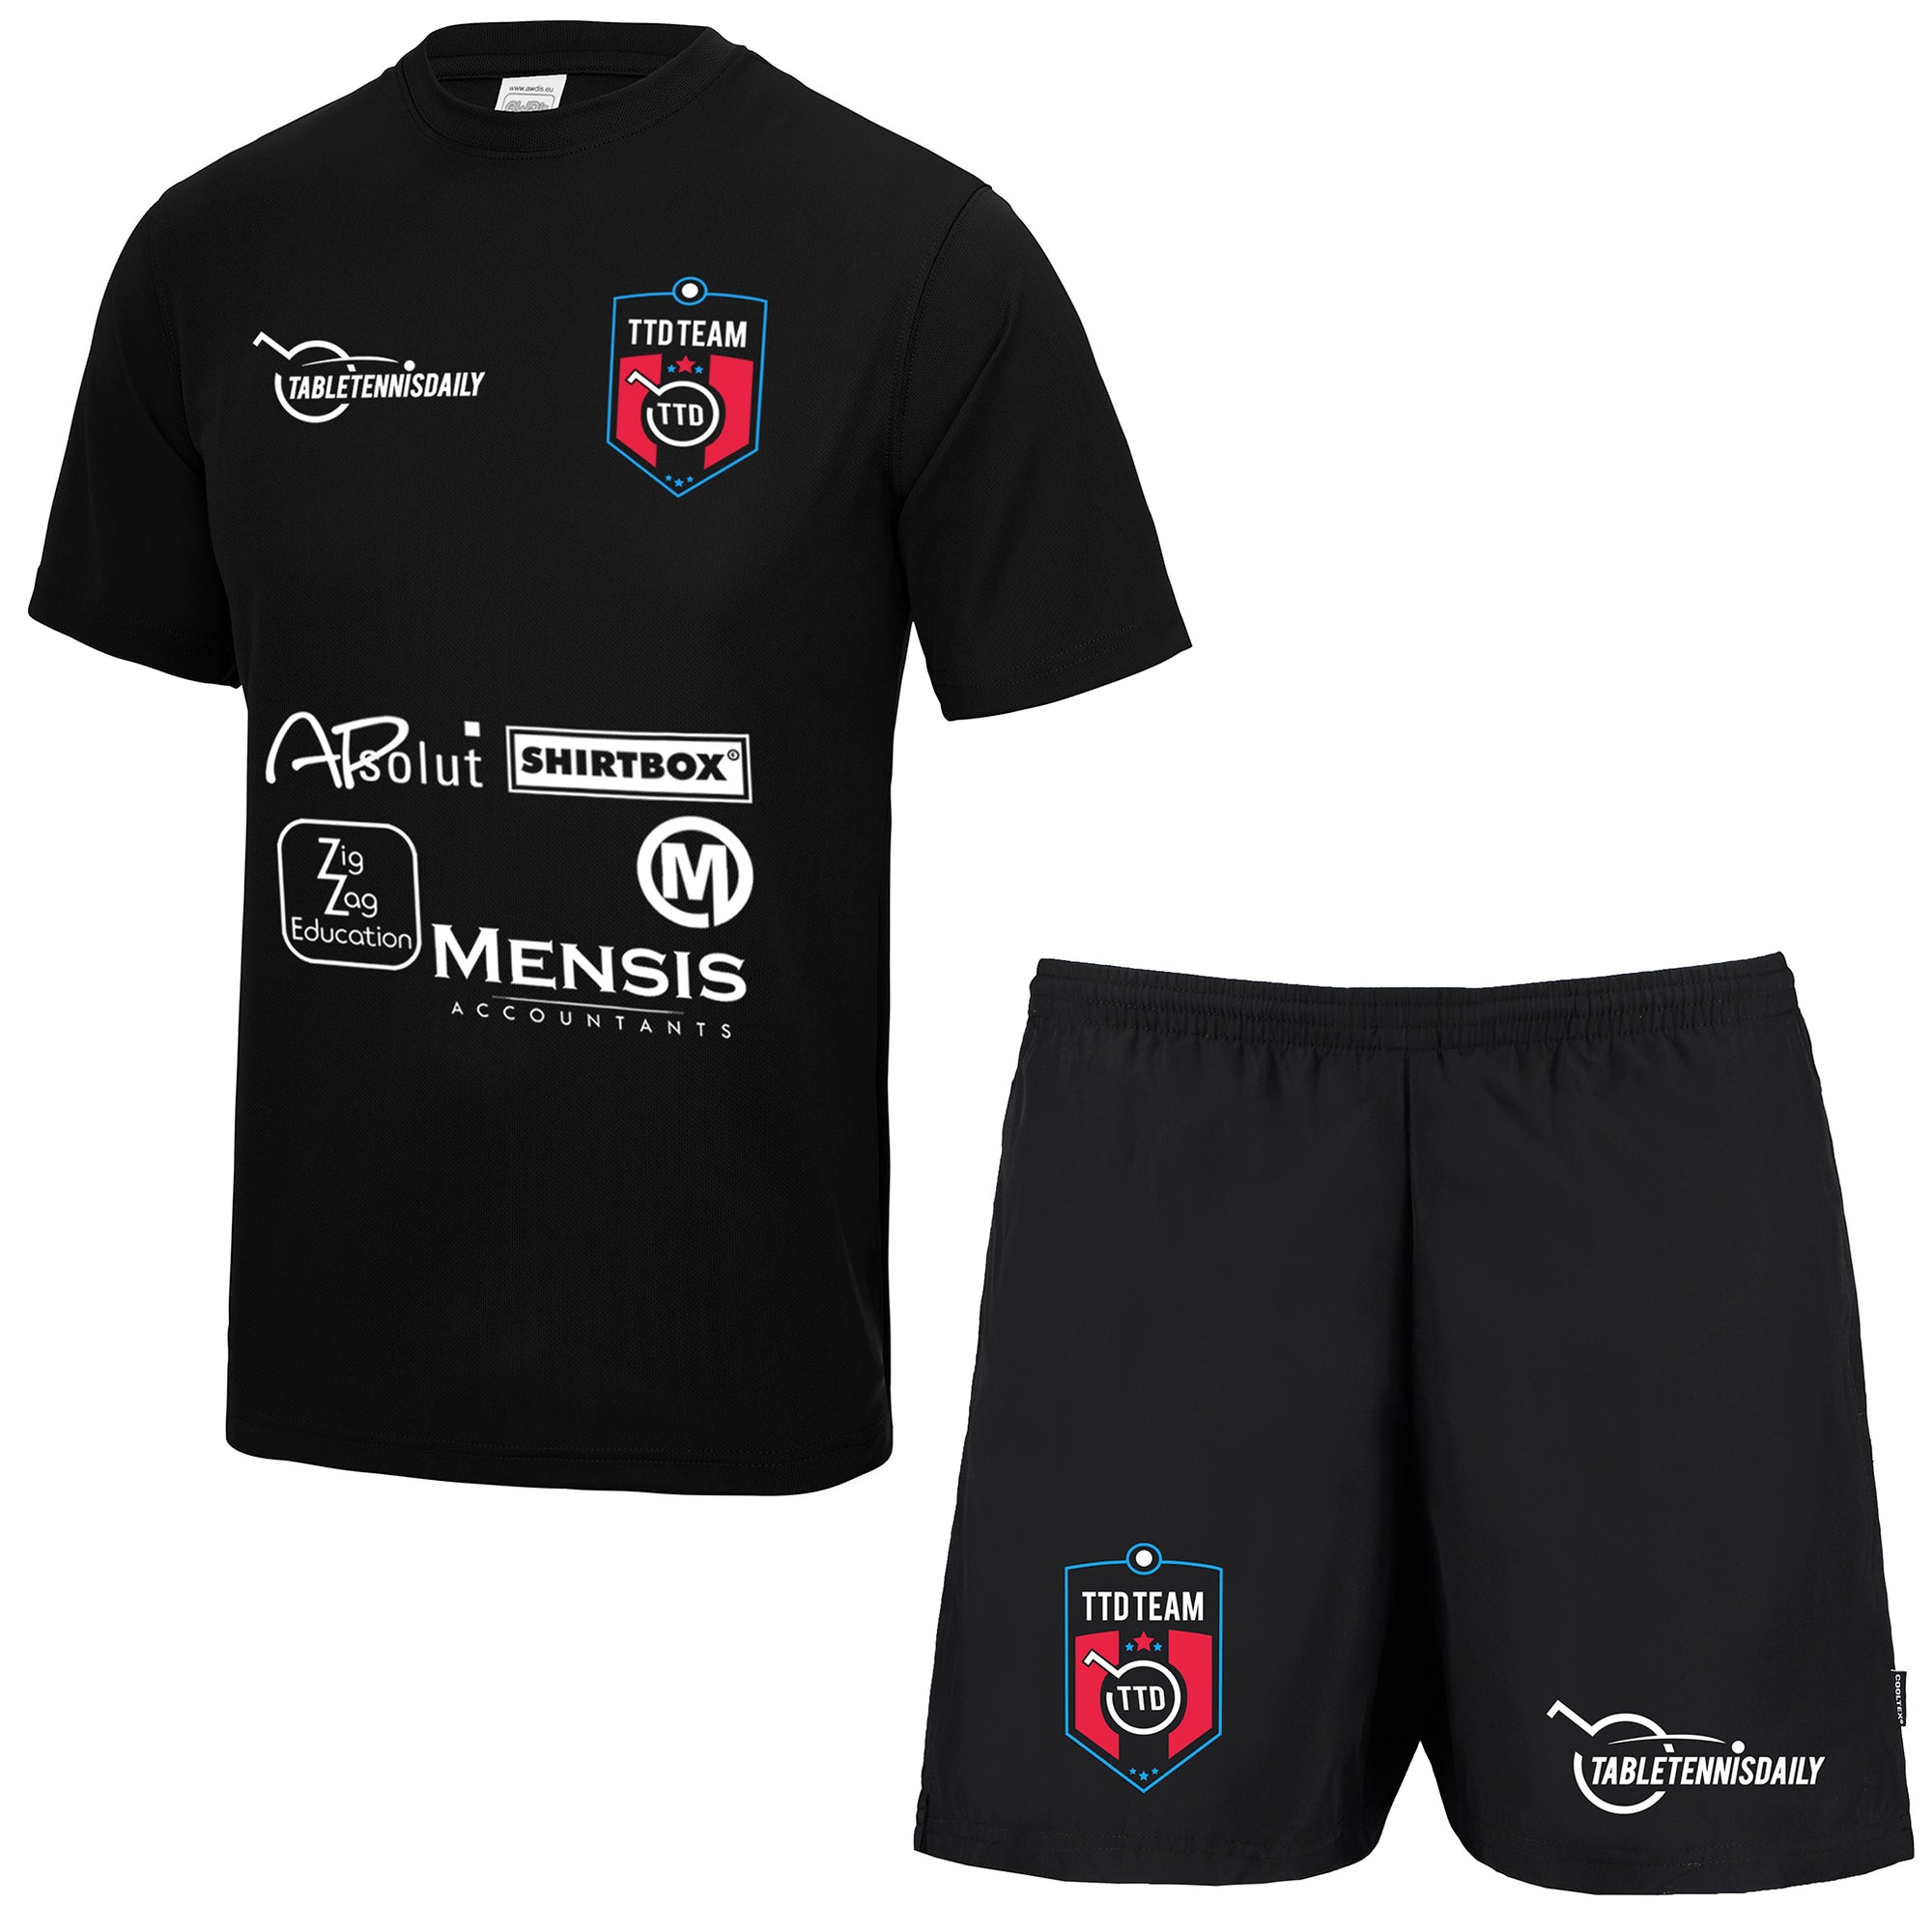 TTD Team High Performance Table Tennis Shirt and Shorts